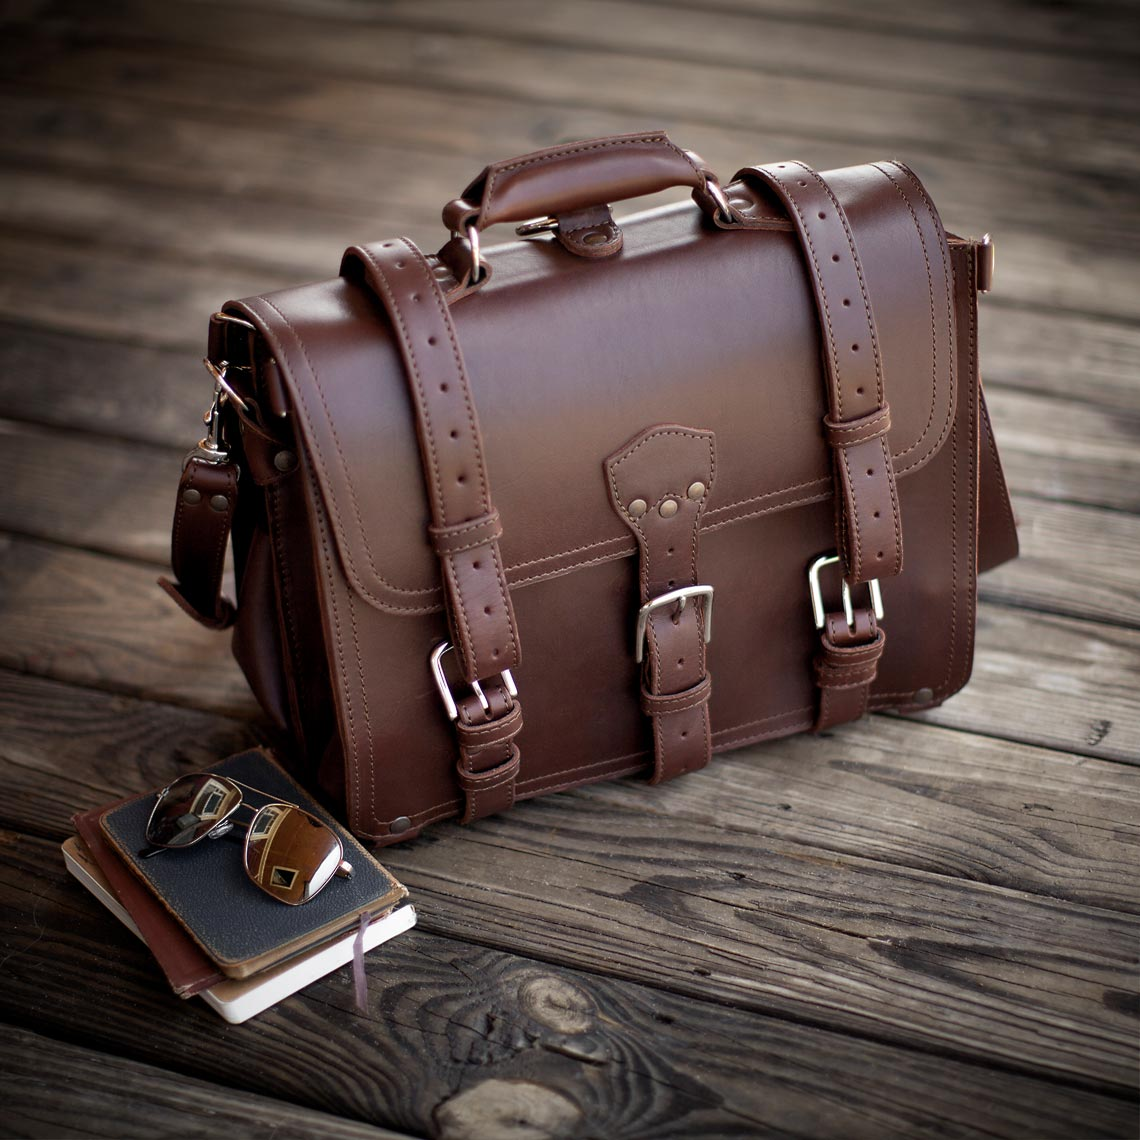 Fulton_Leather_Bag_TravelDiary_UnitedAir